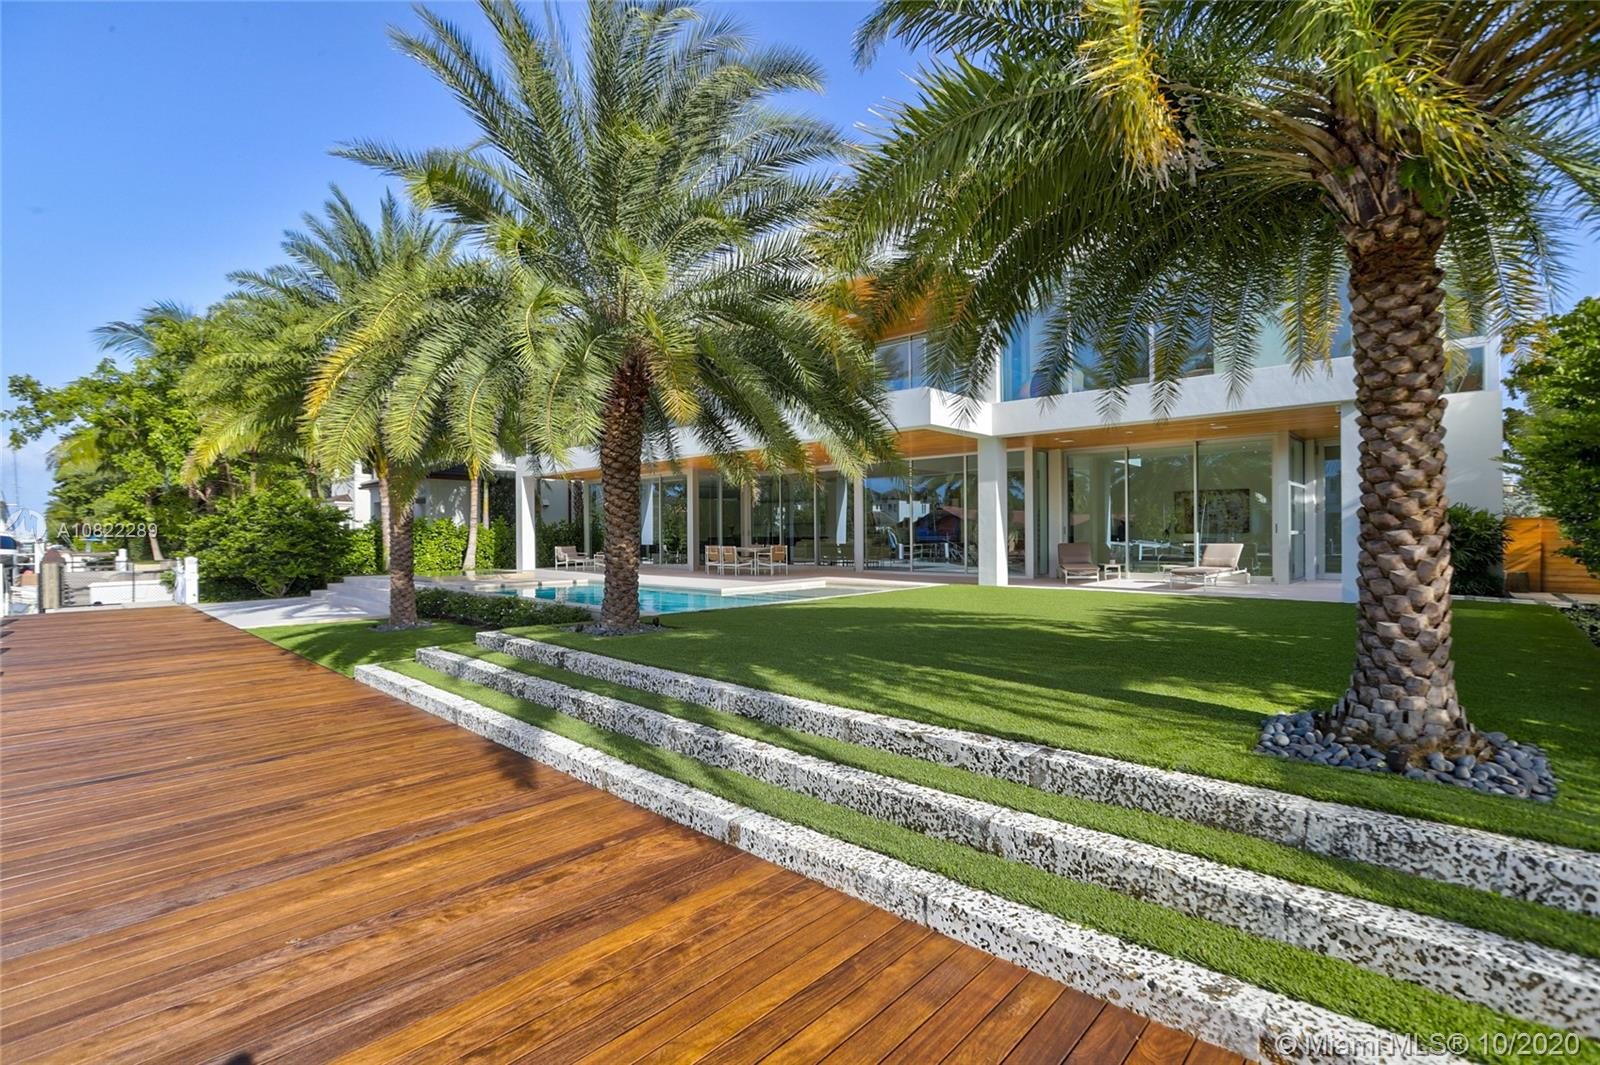 Fort Lauderdale's finest Organic High End Finishes & intelligent Architecture by Bob Tuthill, in exclusive Rio Vista. This modern home offers 100 ft of waterfront w/ new Ipe Dock & Seawall & 125 ft deep lot w/ Salt Chlorinated Heated Pool, Infinity Spa & tropical landscaping by George Keen. Eggersmann German engineered kitchen w/ Miele & Gaggenau appliances, Glass & Lacquer cabinets & Stainless Steel & Carrara Marble Counters. Legno Bastone European Wide Plank White Oak & Limestone Floors, Italian laminated hingeless magnetic doors, architectural reverse Metal Baseboards. Master Suite w/ Downtown Views, Calacatta Gold Marble & Eggersmann Closet w/ semi precious stone. Custom Elevator, Sub Zero Wine Cooler, Control4 Smart Home w/ integrated sound, security & lighting, Motorized Shades.